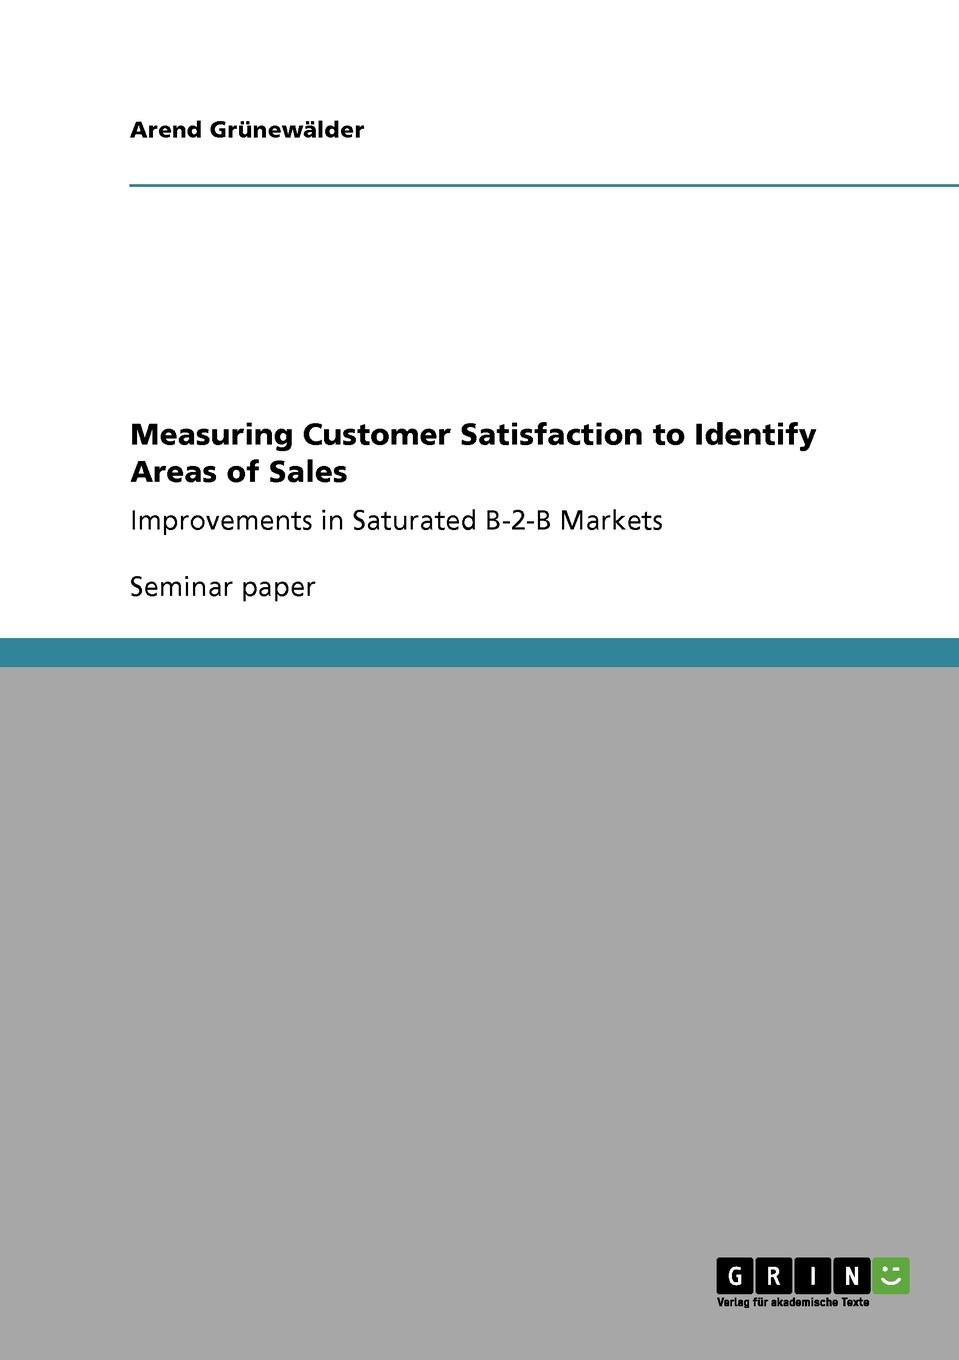 Arend Grünewälder Measuring Customer Satisfaction to Identify Areas of Sales public serves delivery reform and customer satisfaction in ethiopia